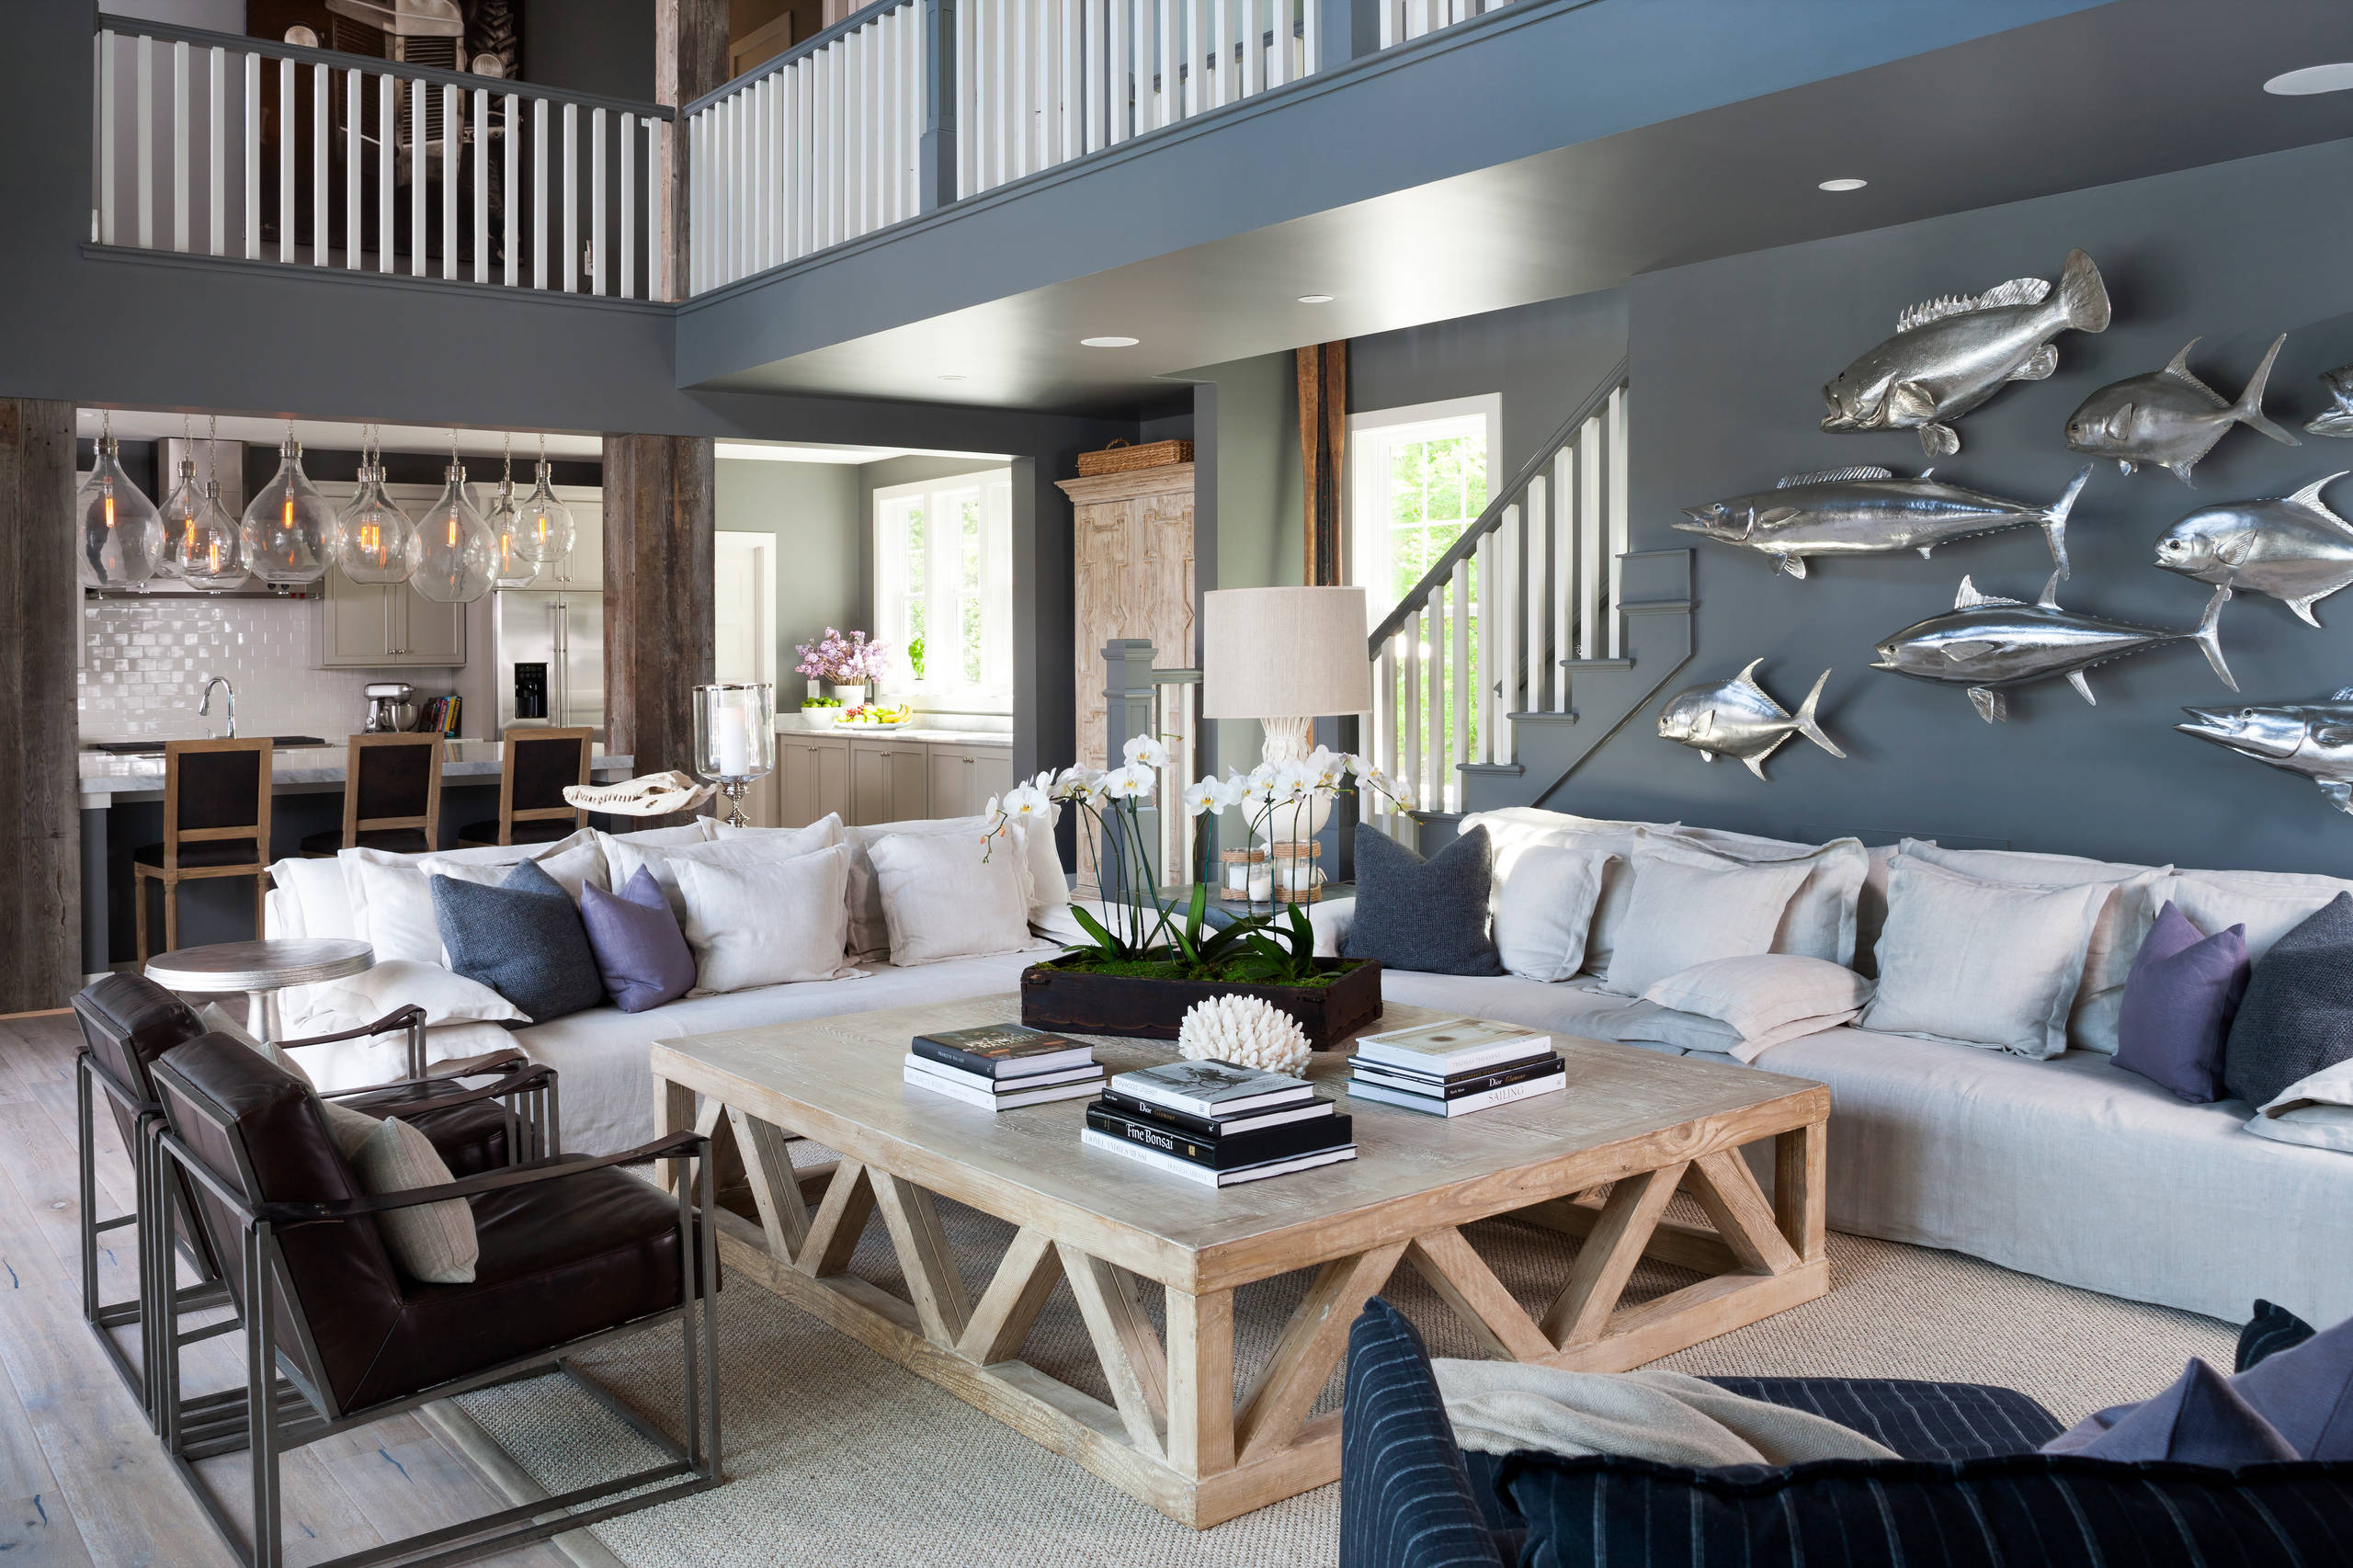 11 Most Attractive Grey And Blue Living Room Ideas That You Will Love Jimenezphoto